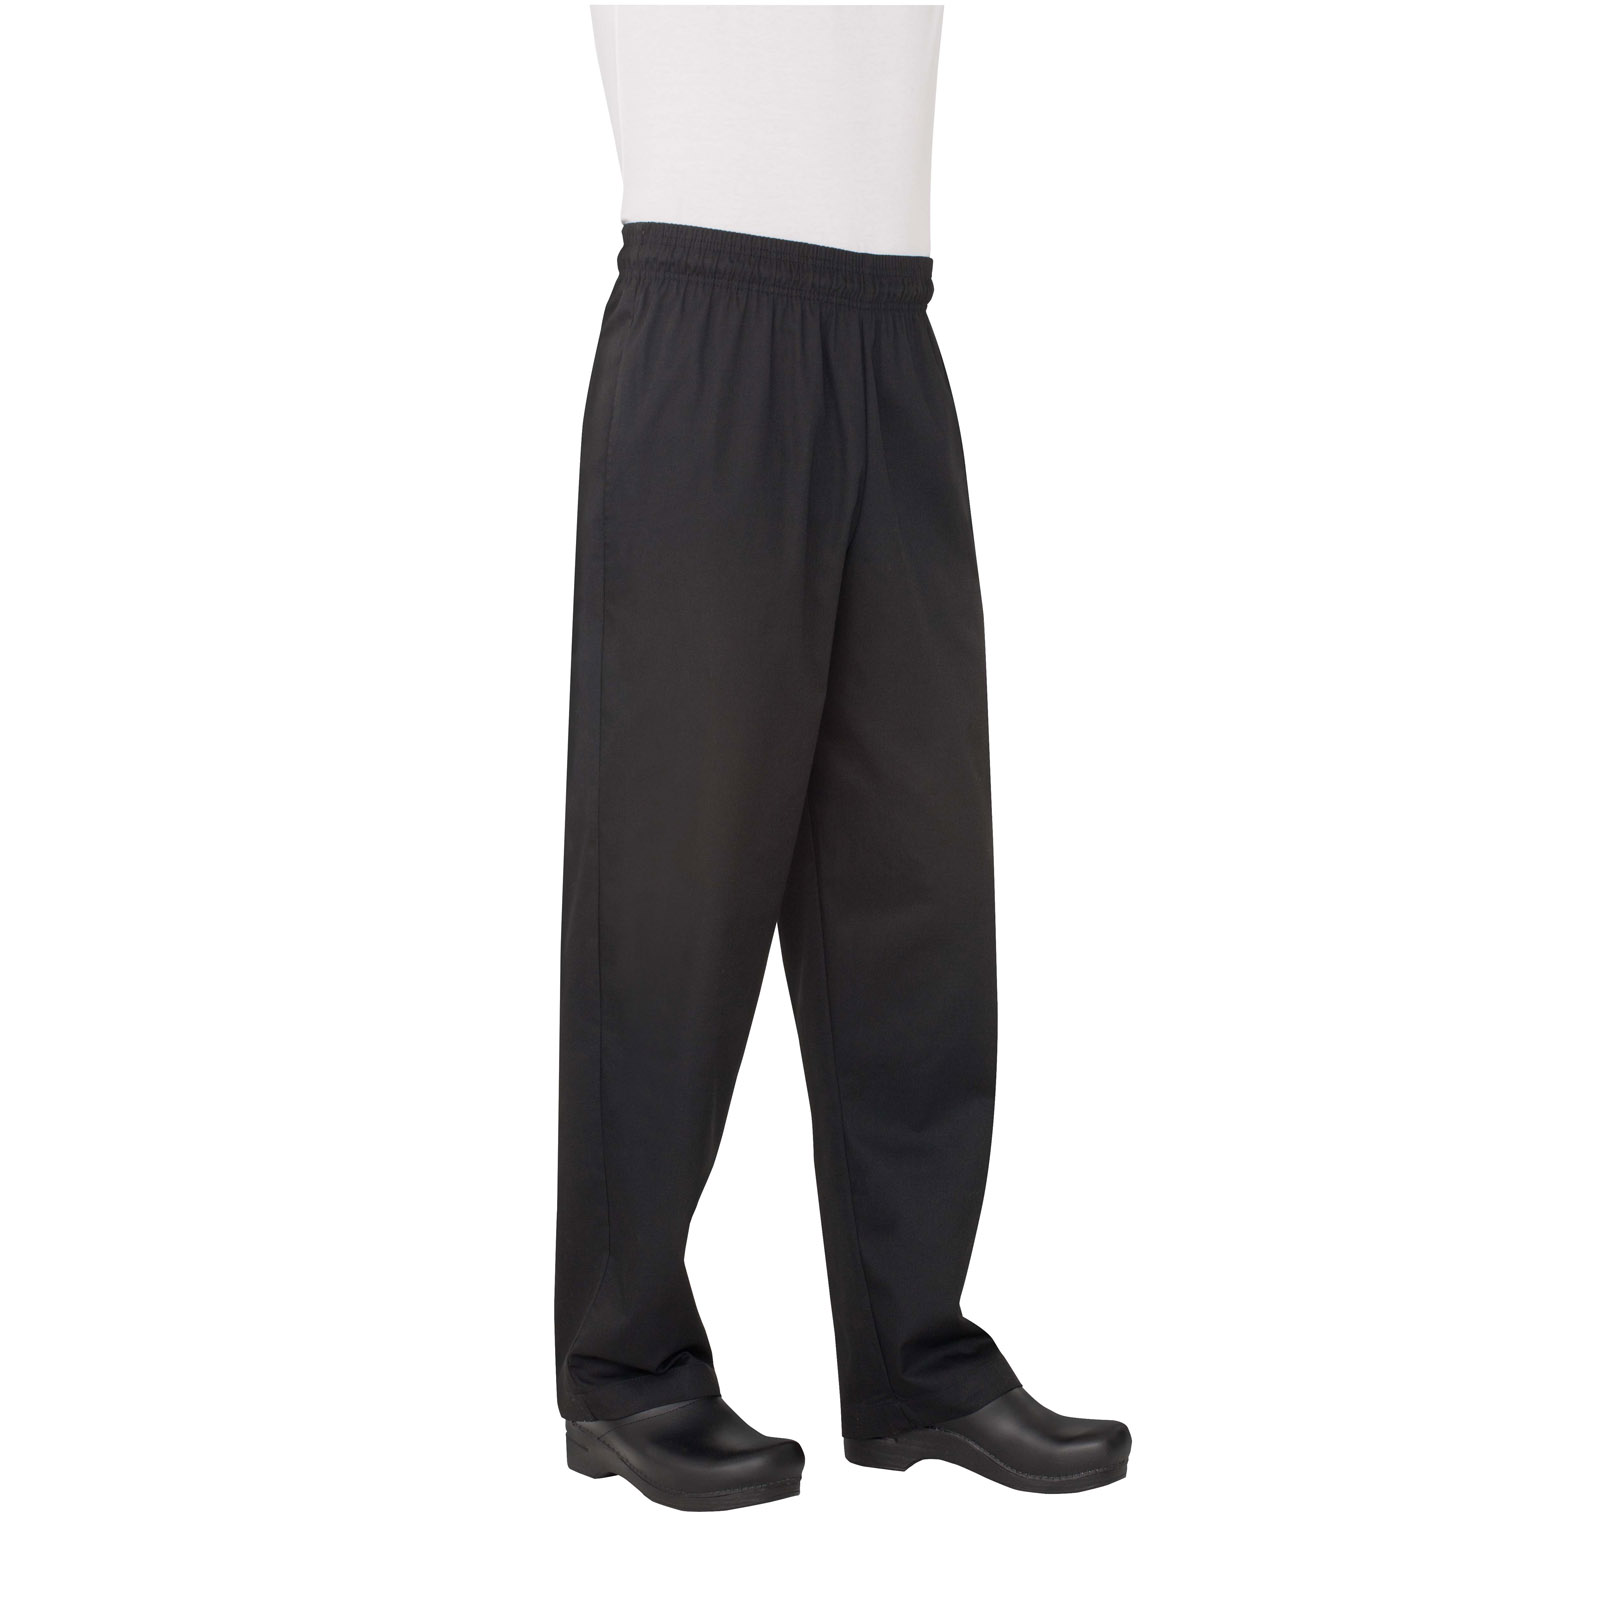 NBBP000M Chef Works chef's pants